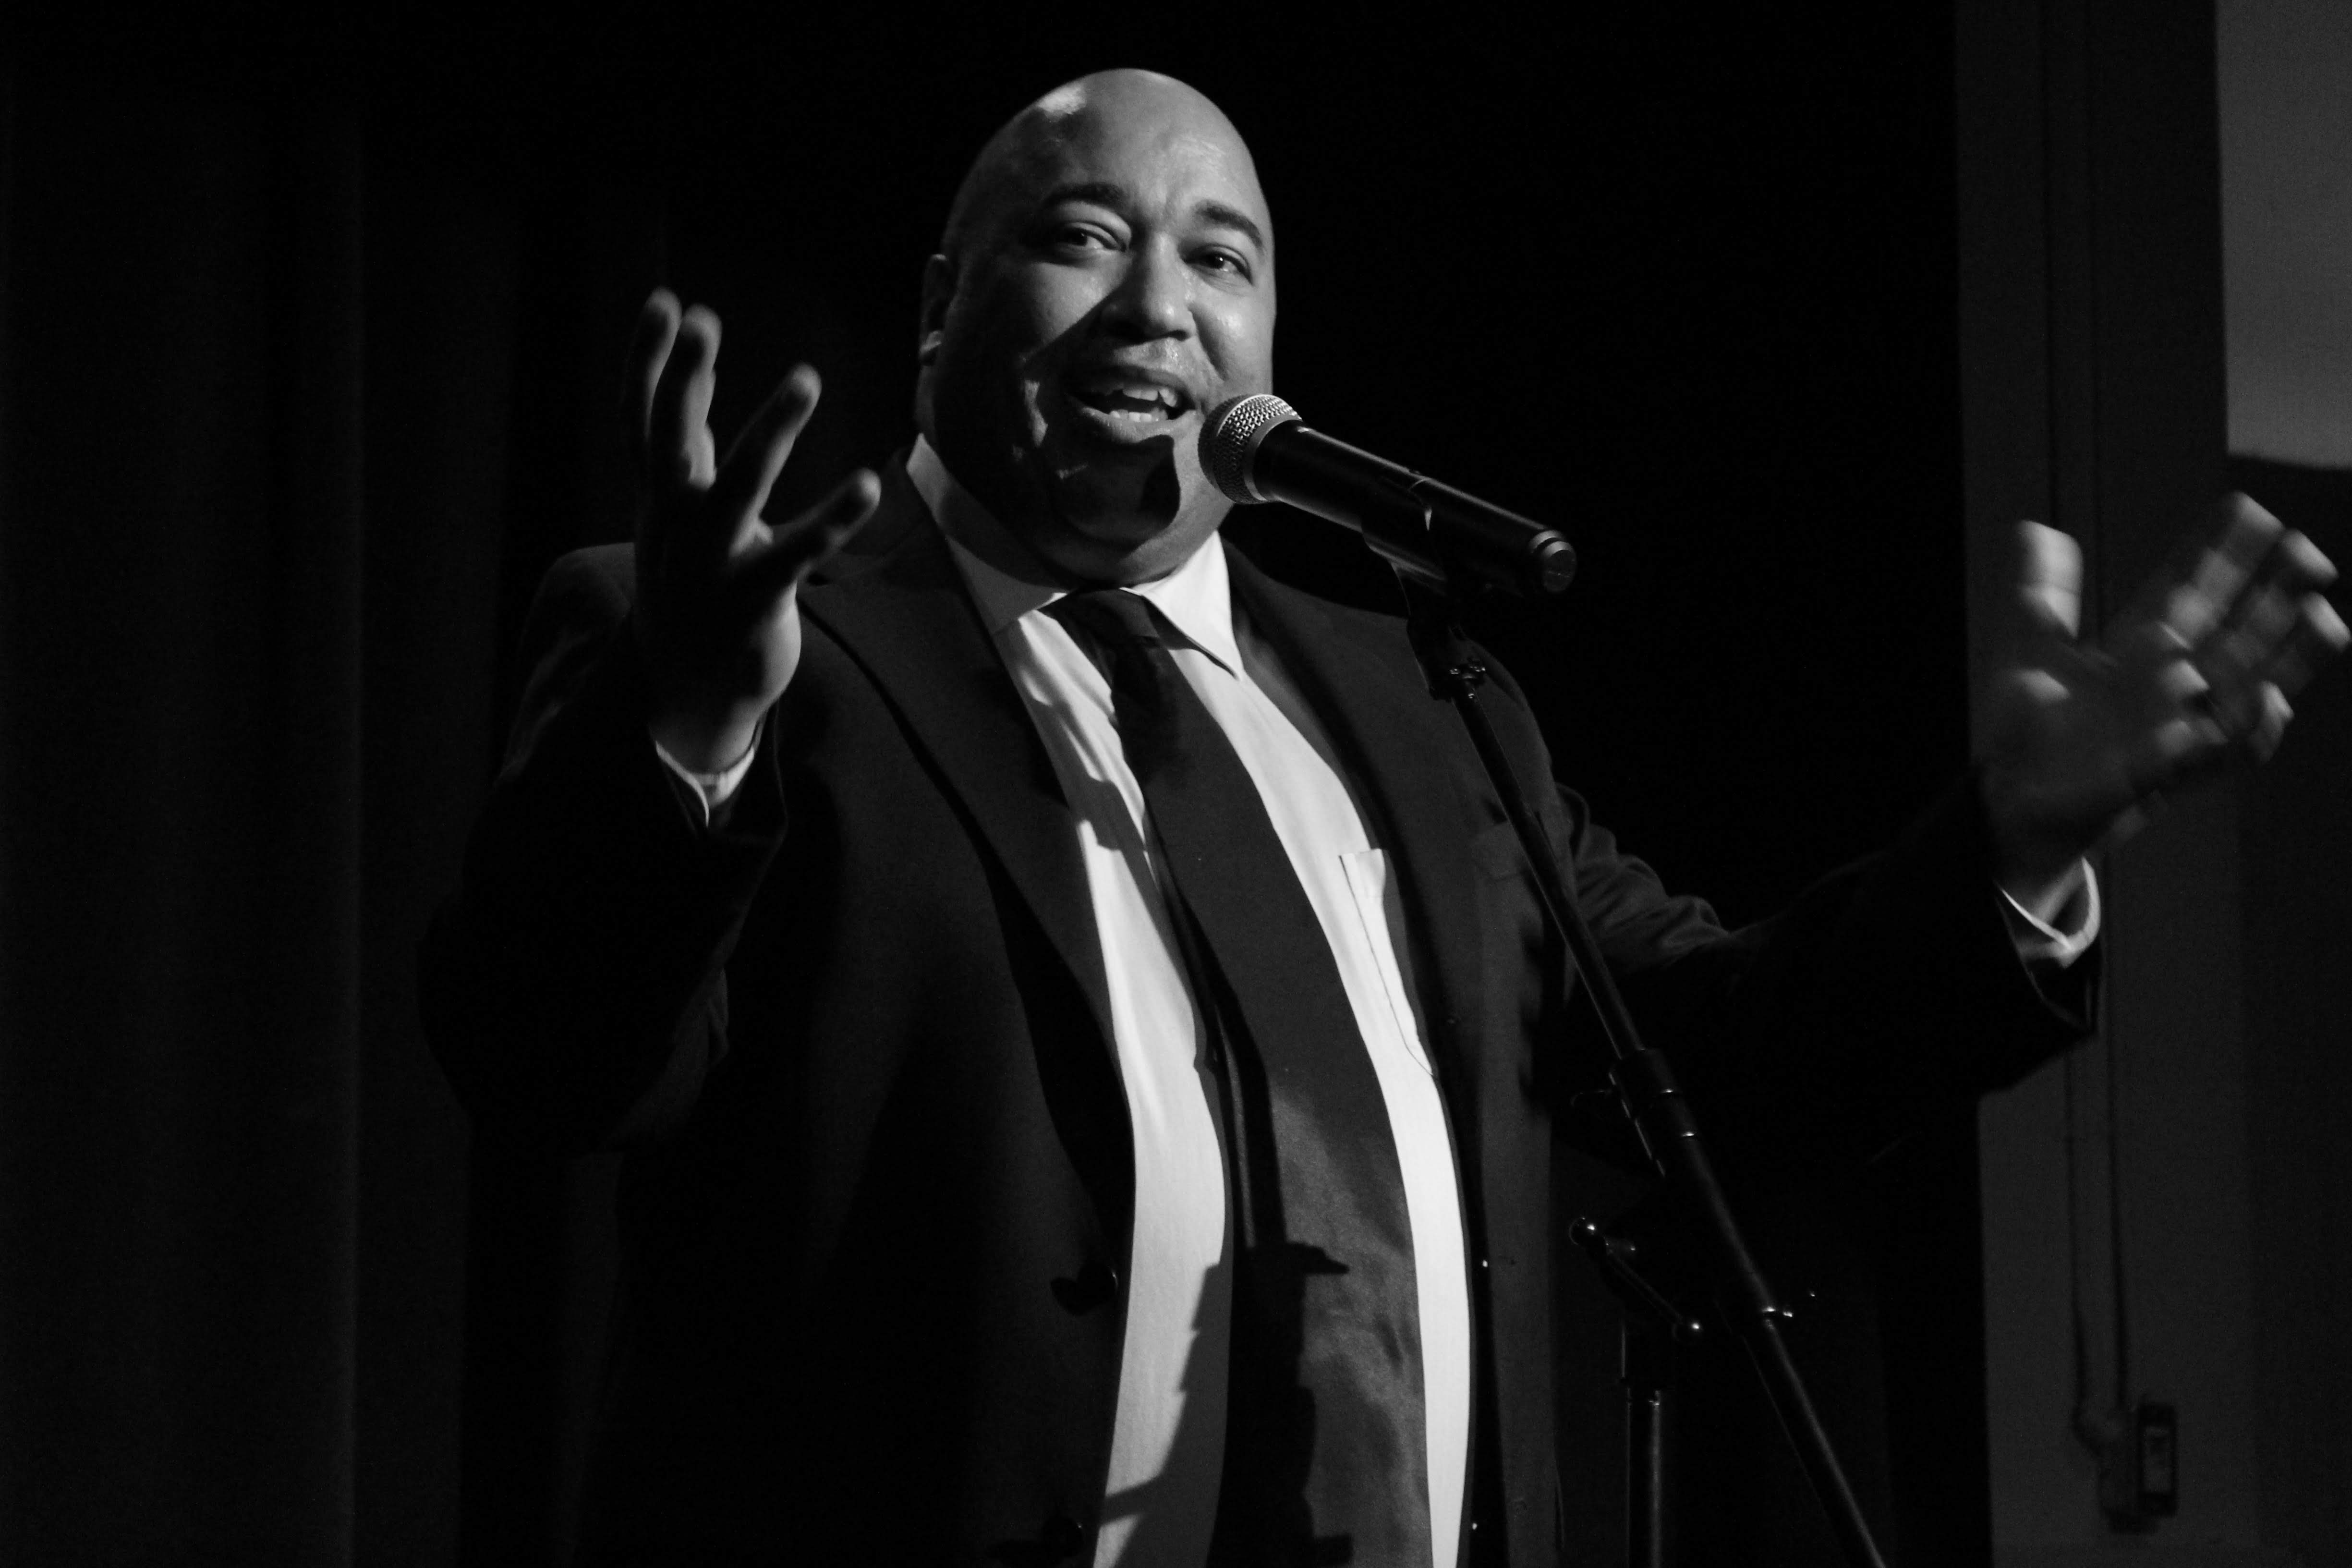 Grayscale image of Velvet Wells, a Black male in a black suit, speaking, into a microphone with a smile on his face. photo: Krissia Valiente